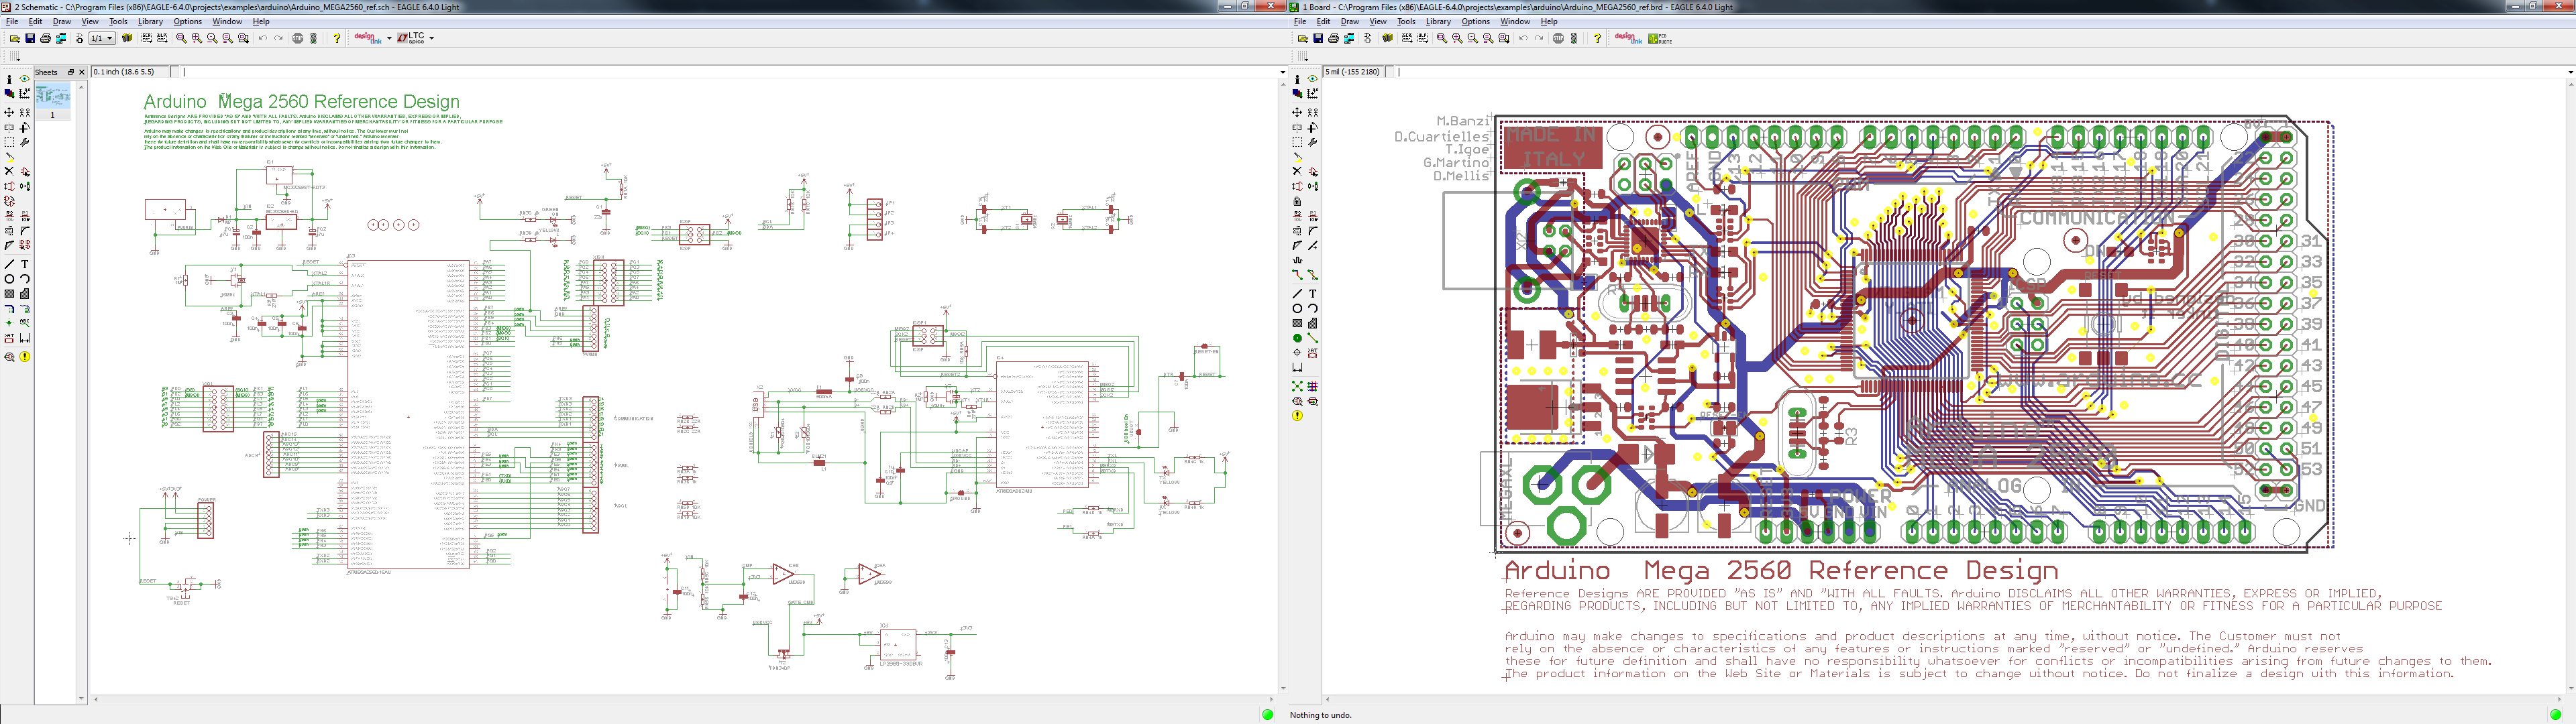 How To Install And Setup Eagle Circuit Diagram Schematics Additionally Usb Mouse Wiring Board Schematic View Both Open